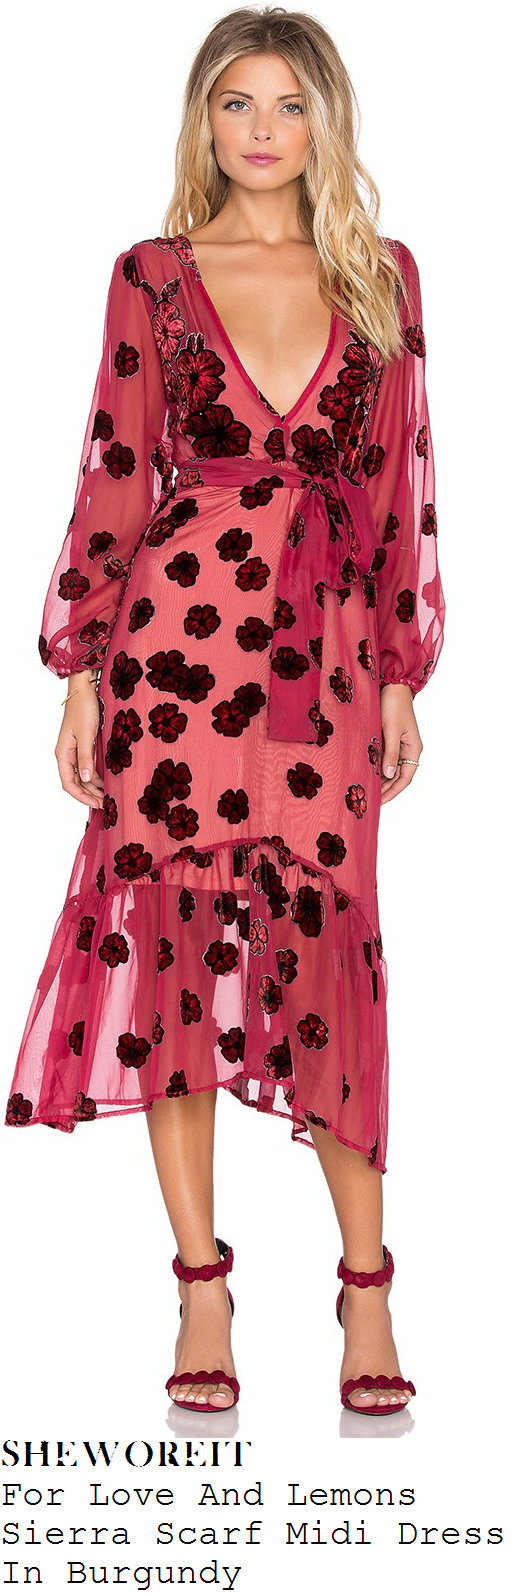 sam-faiers-for-love-and-lemons-sierra-burgundy-pink-poppy-floral-print-sheer-midi-dress